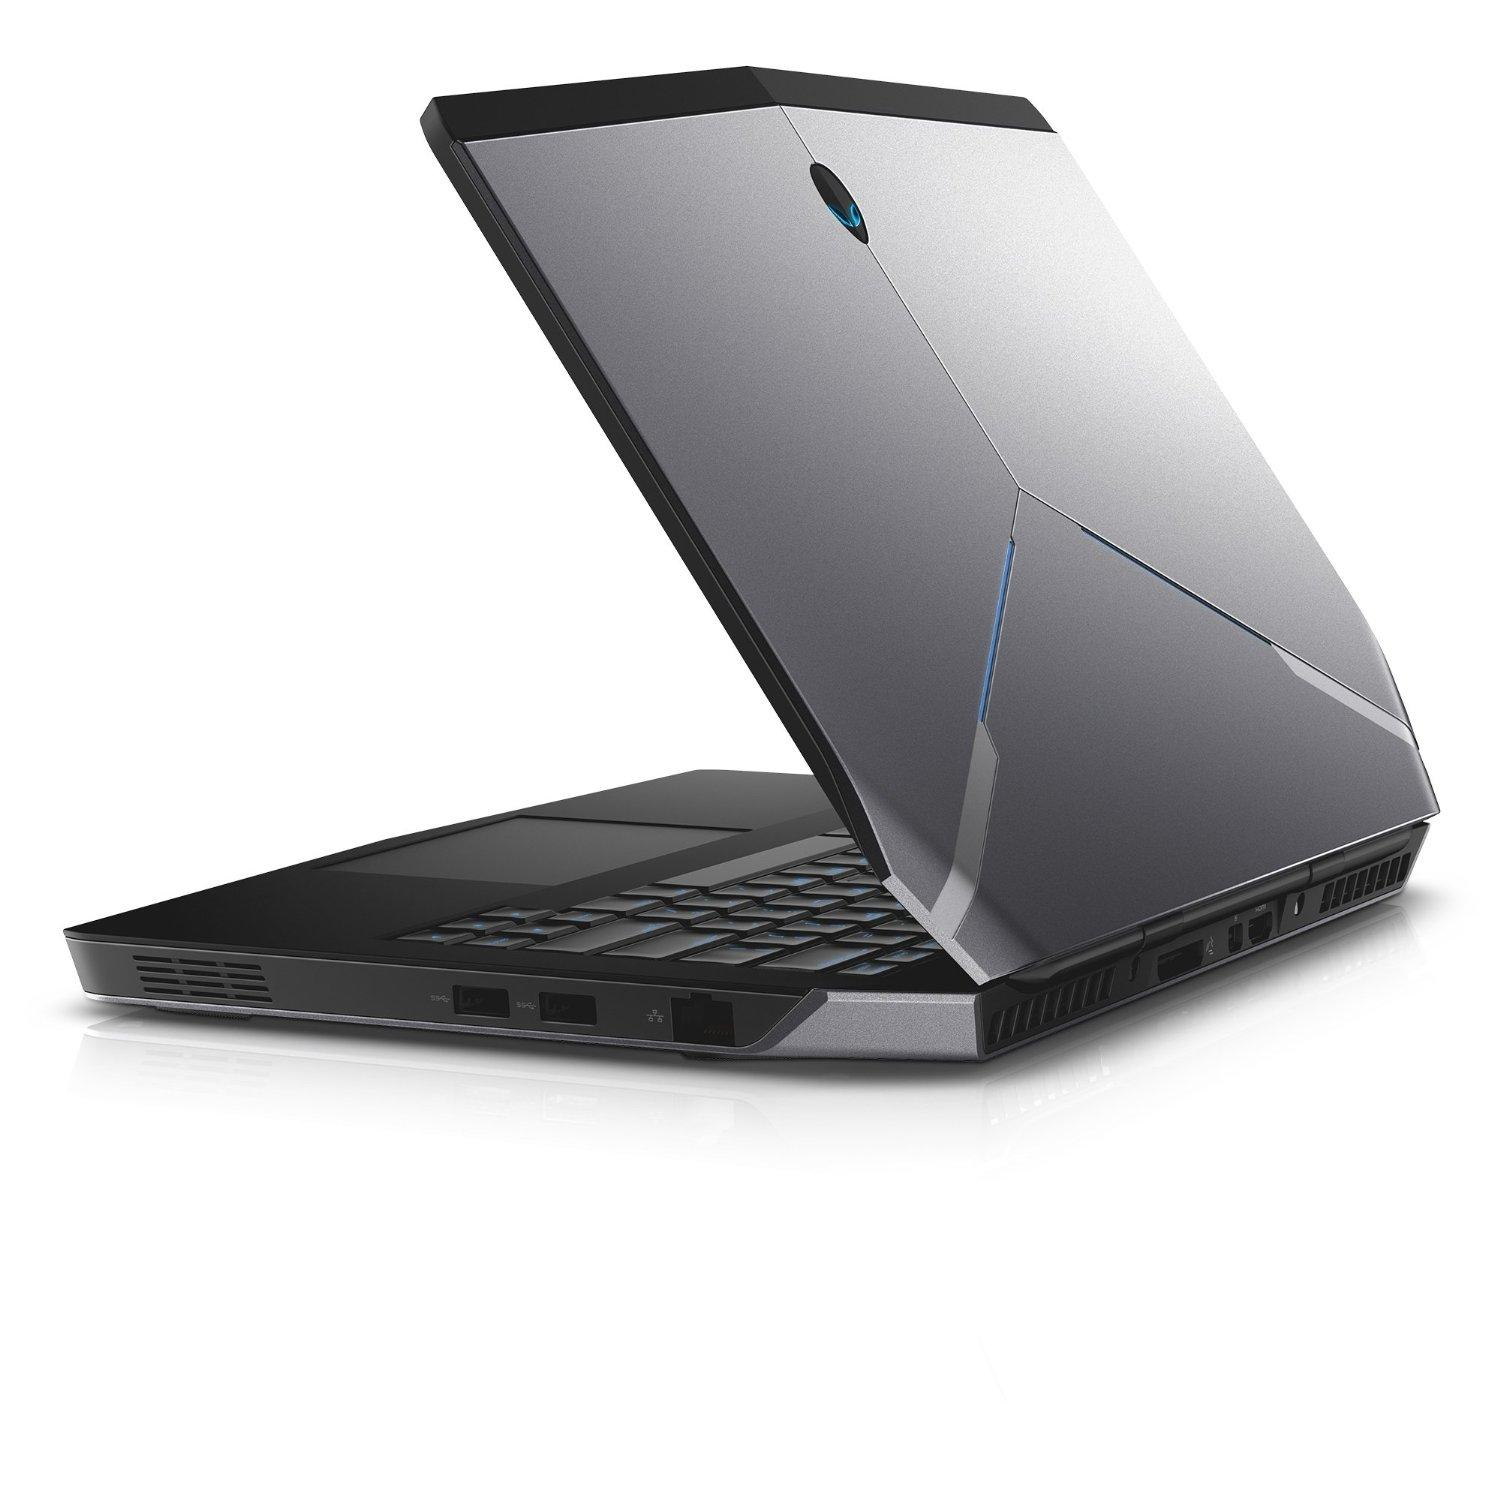 Alienware 13 R2 QHD+ Touchscreen Laptop (i7, 16 GB, 256 GB SSD, 960M)